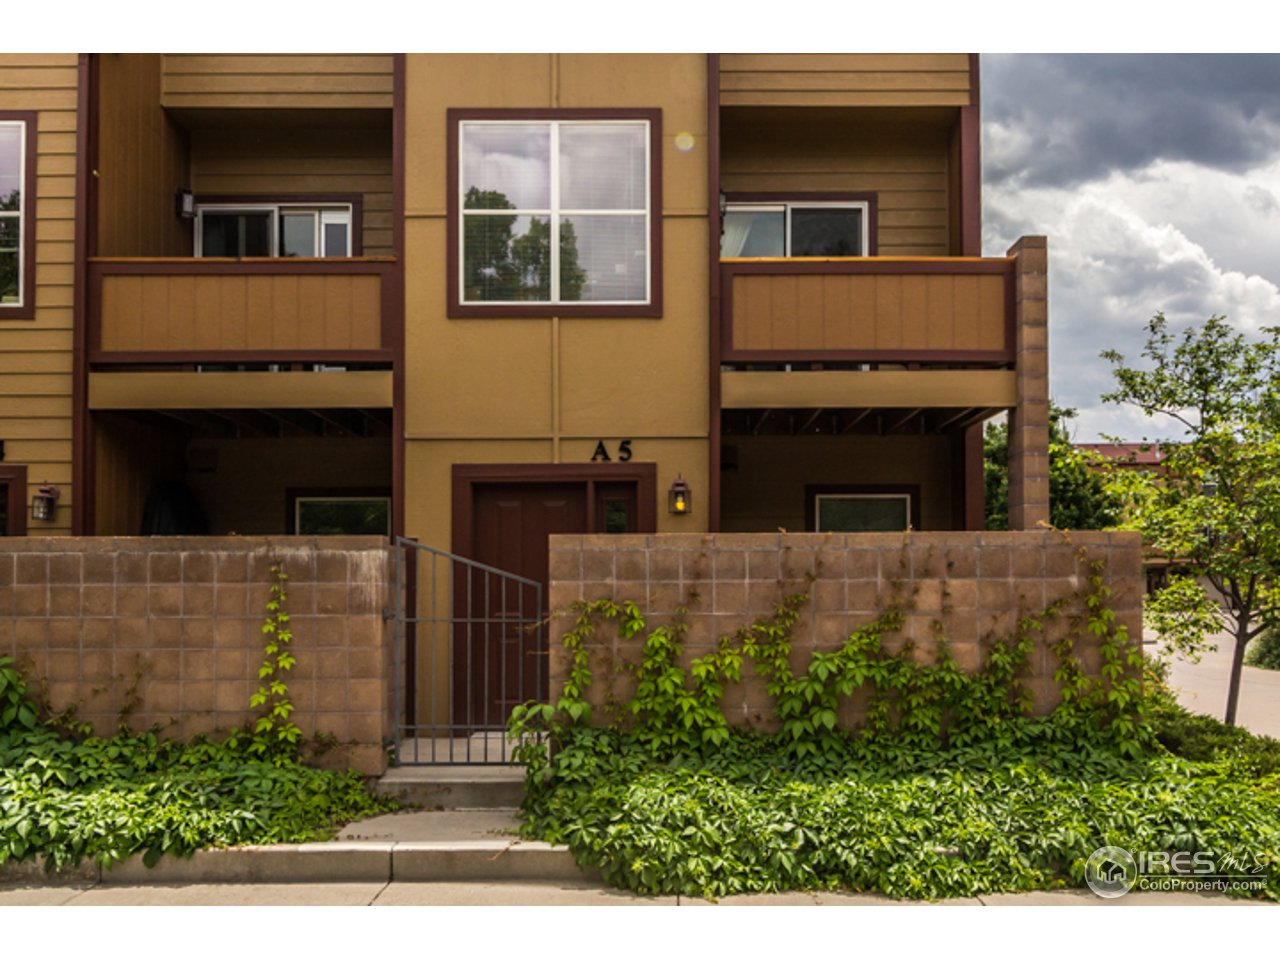 1221 E Prospect Rd A5, Fort Collins CO 80525